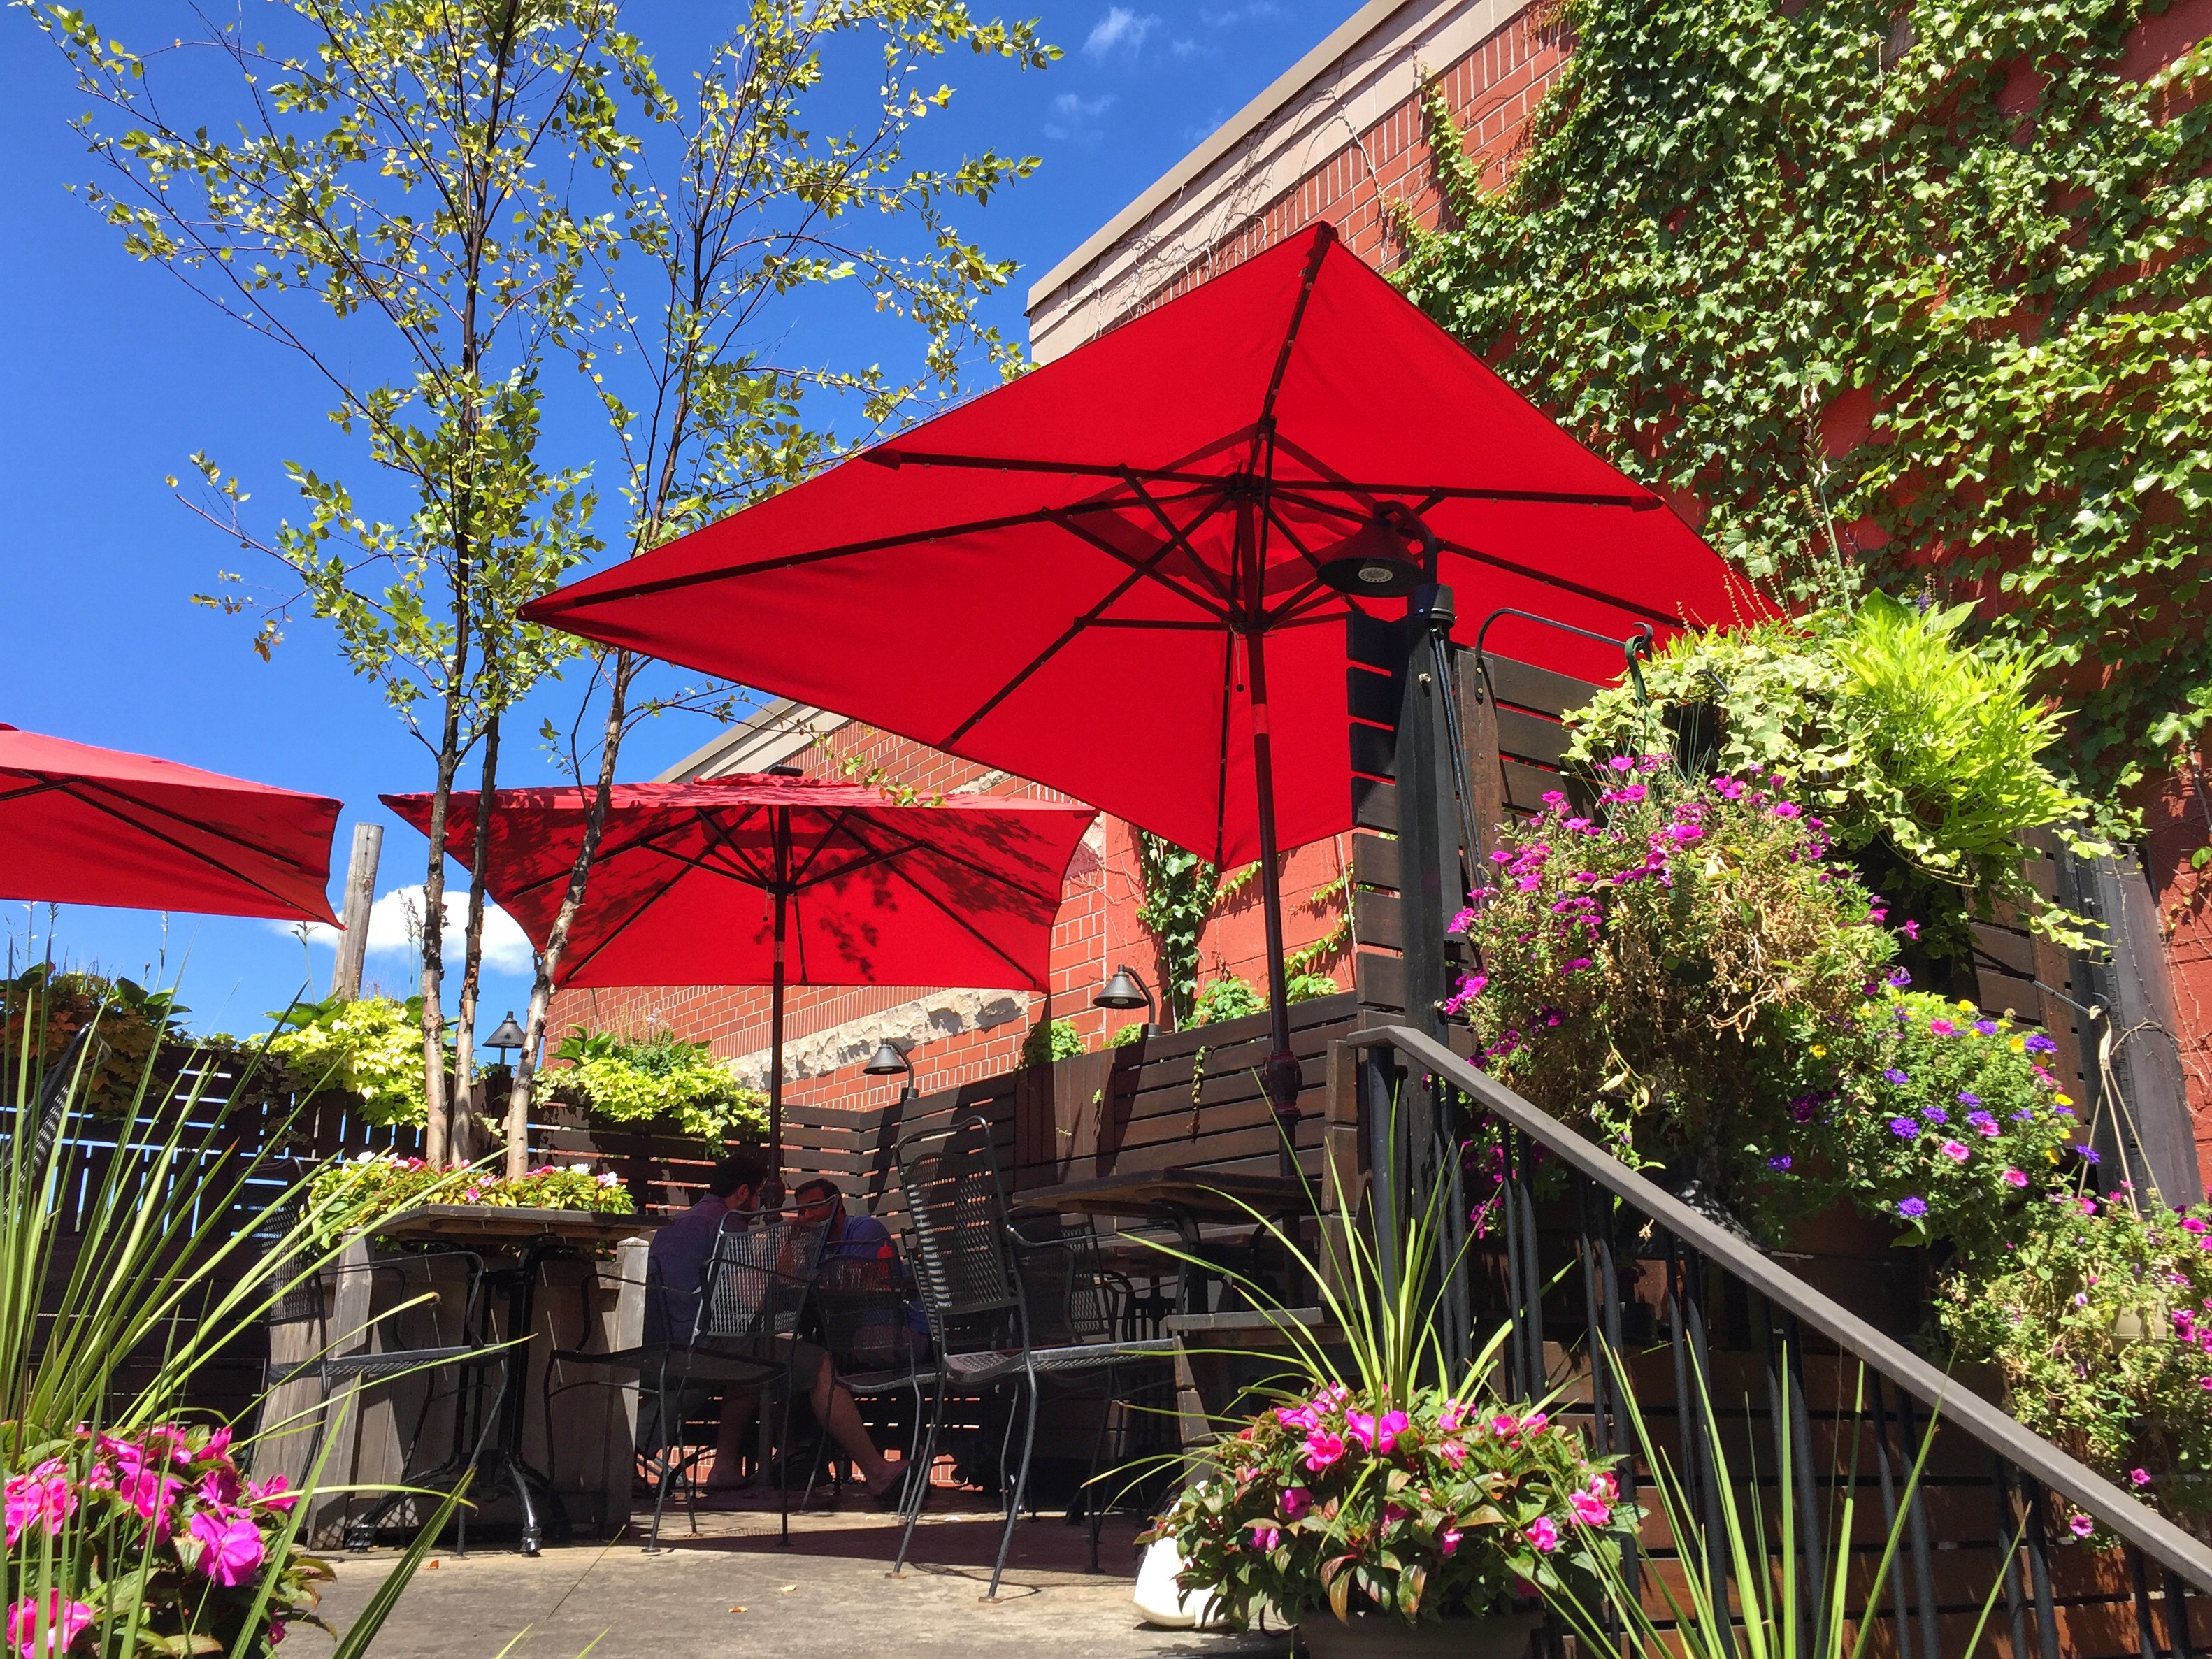 A restaurant patio is bedecked with red umbrellas and greenery.